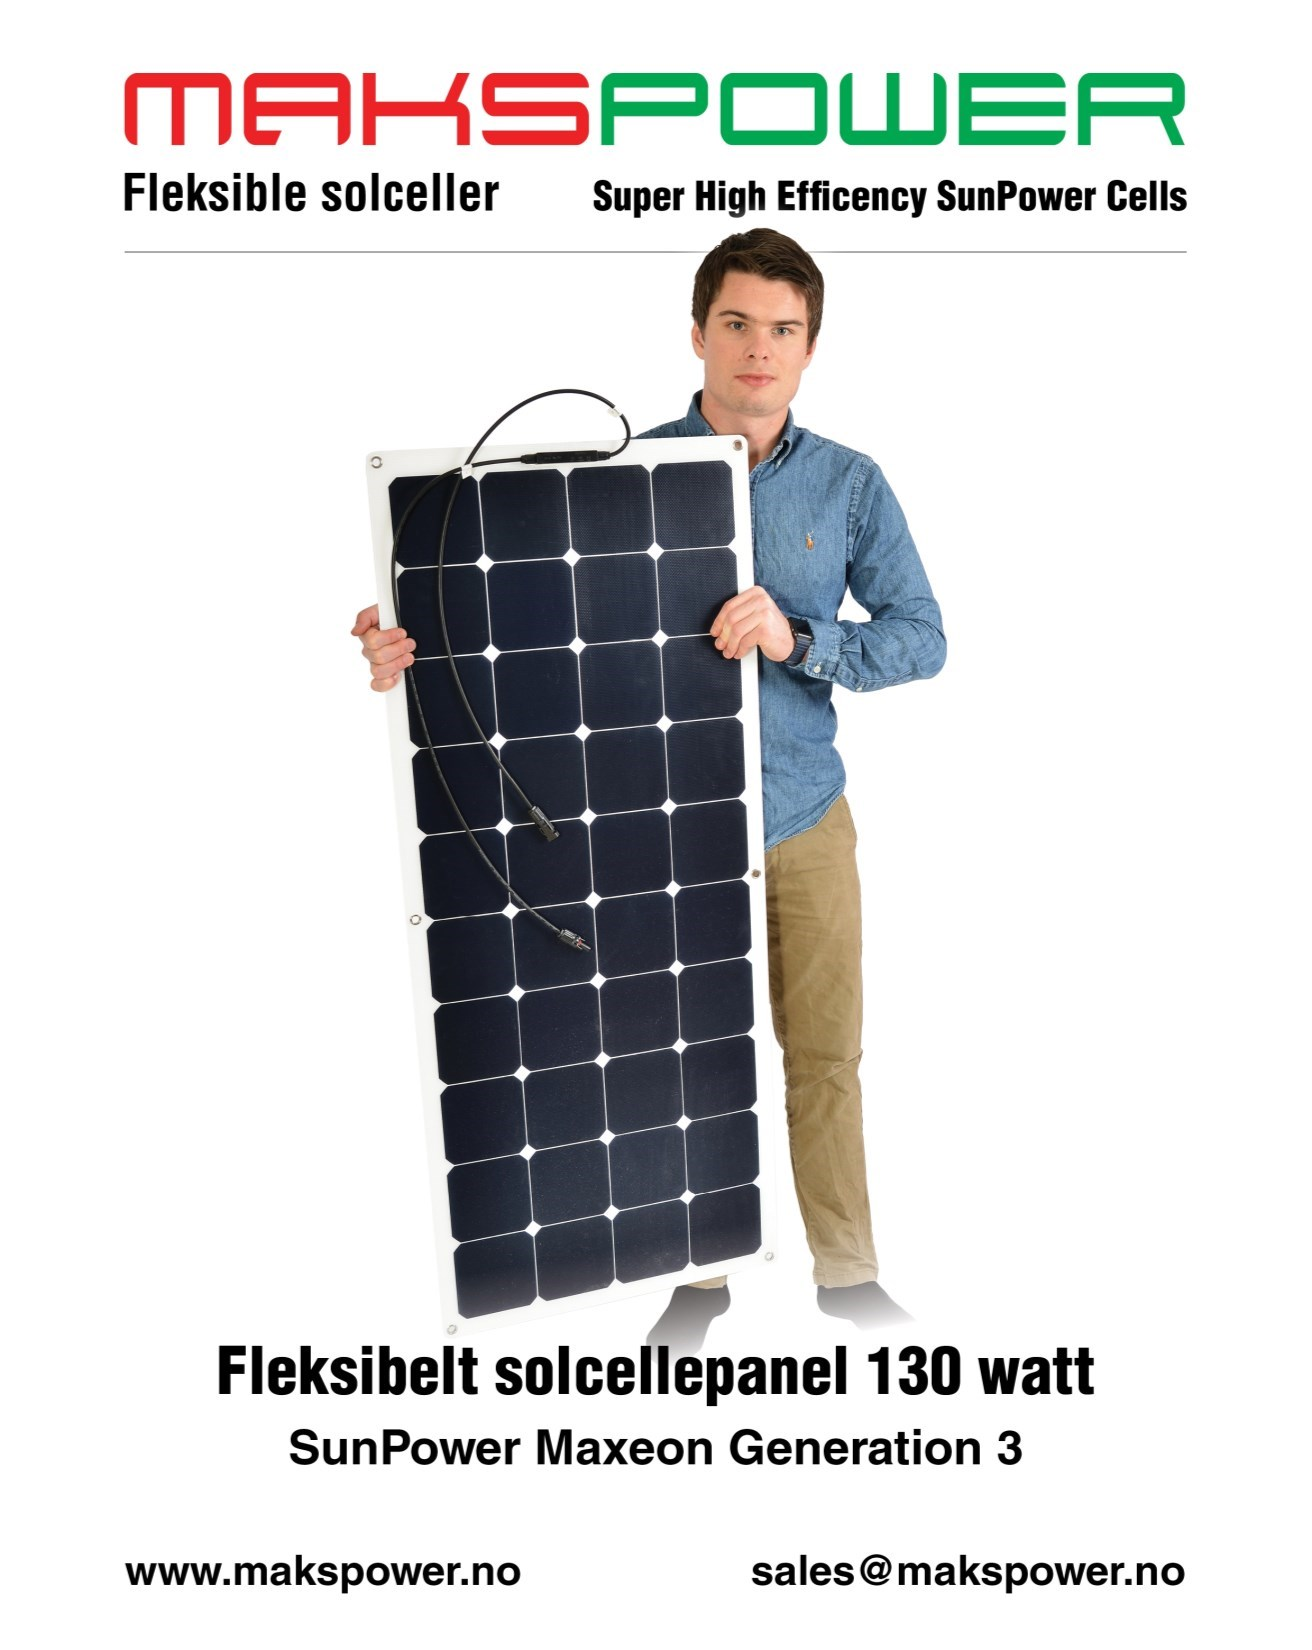 Makspower 130 Watt Fleksibelt solcellepanel SunPower Maxeon generation 3